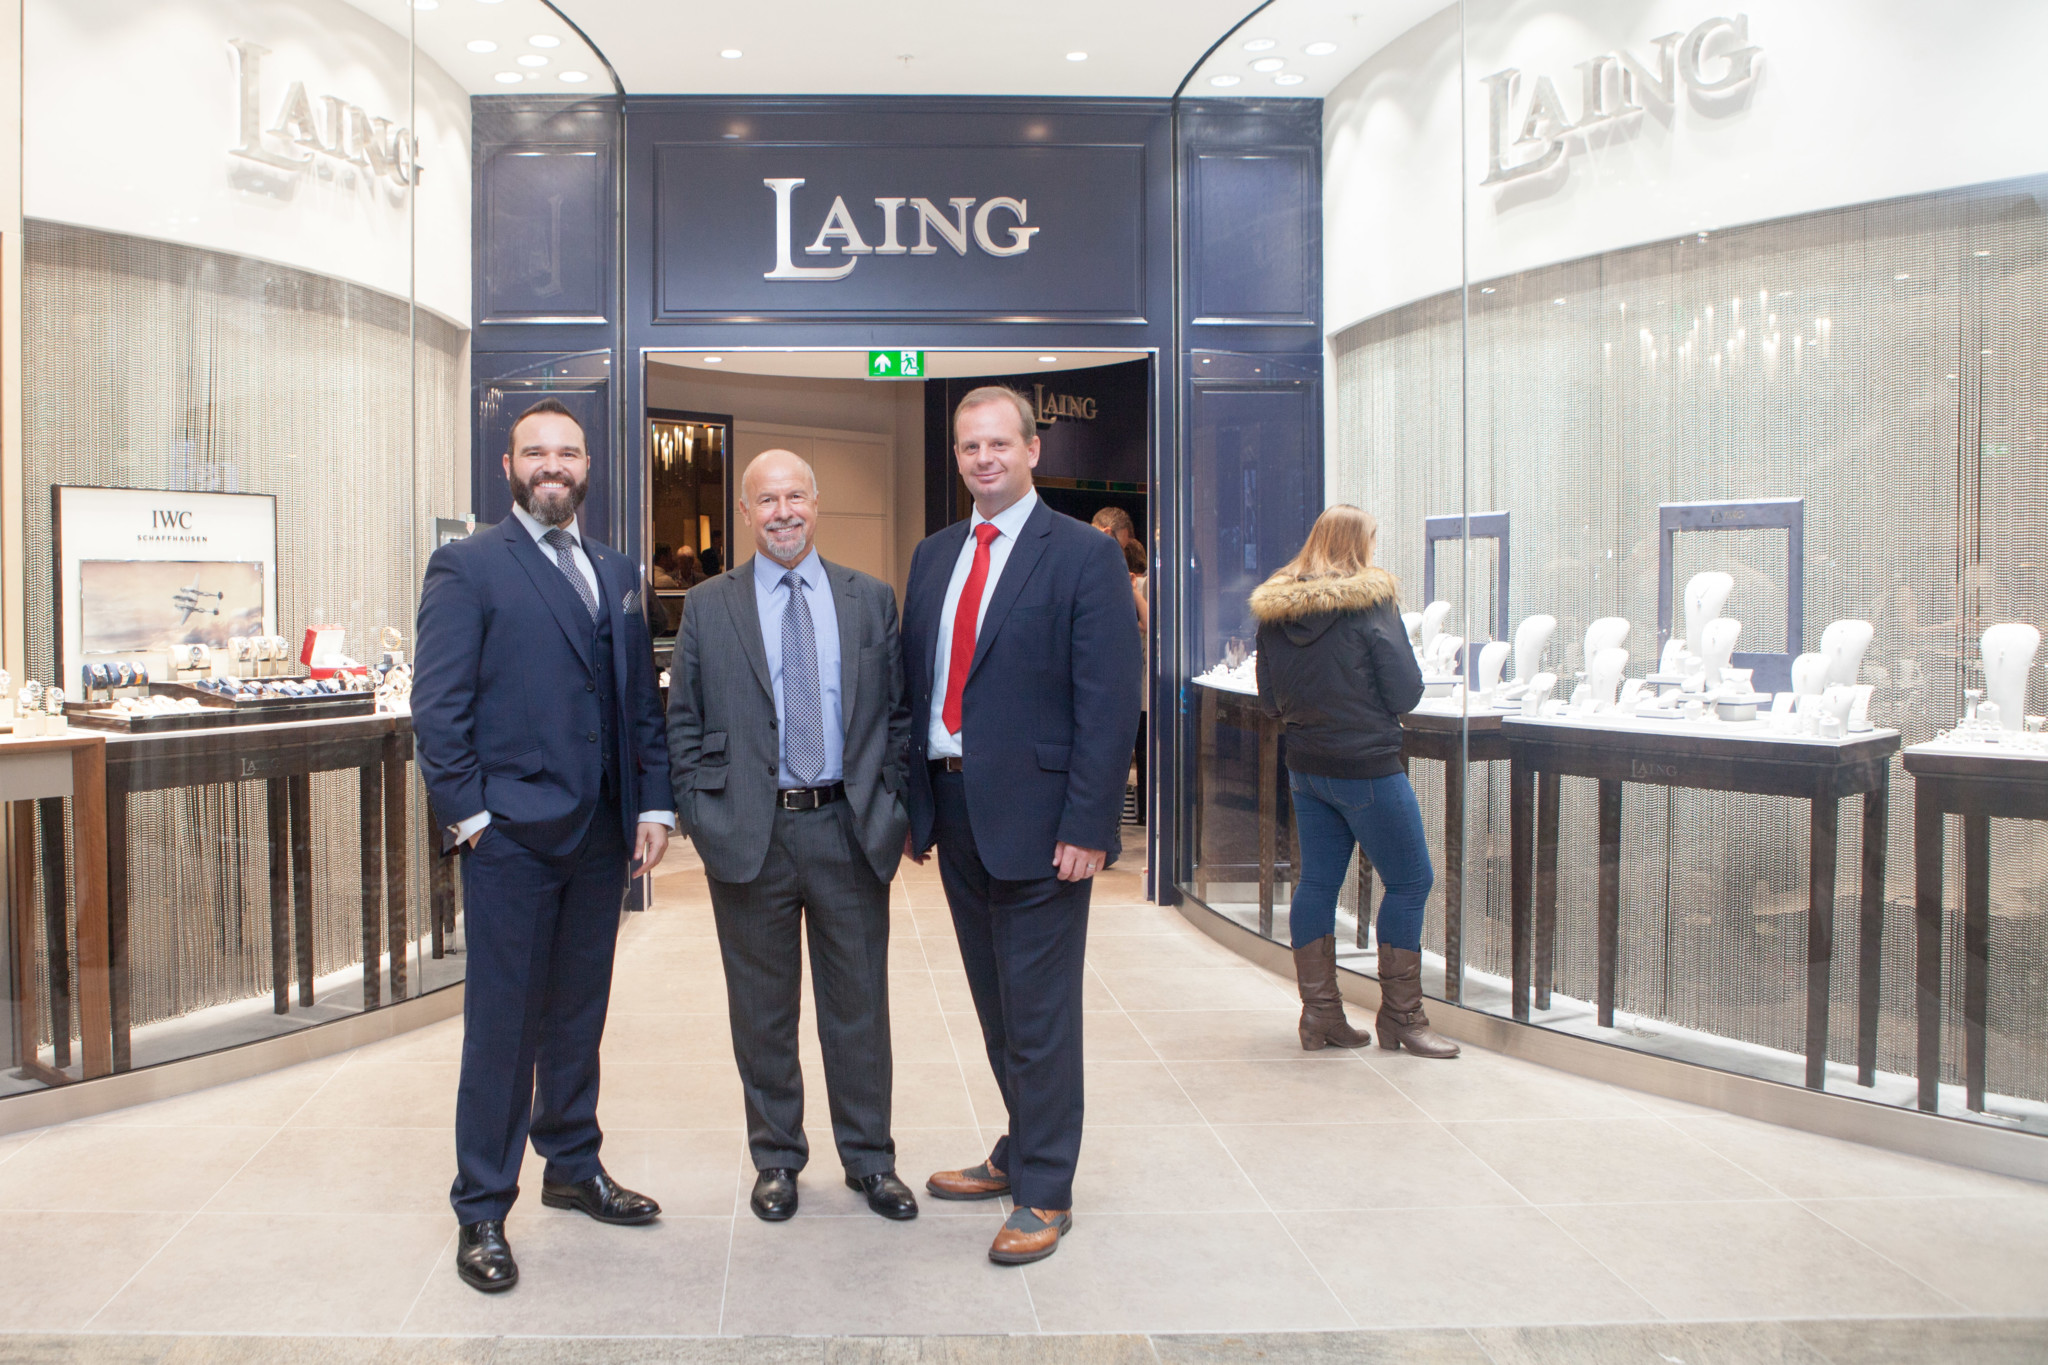 Richard Laing, Store Director, Michael Laing OBE, and Joe Walsh, CEO of Laings at the official opening in Southampton.